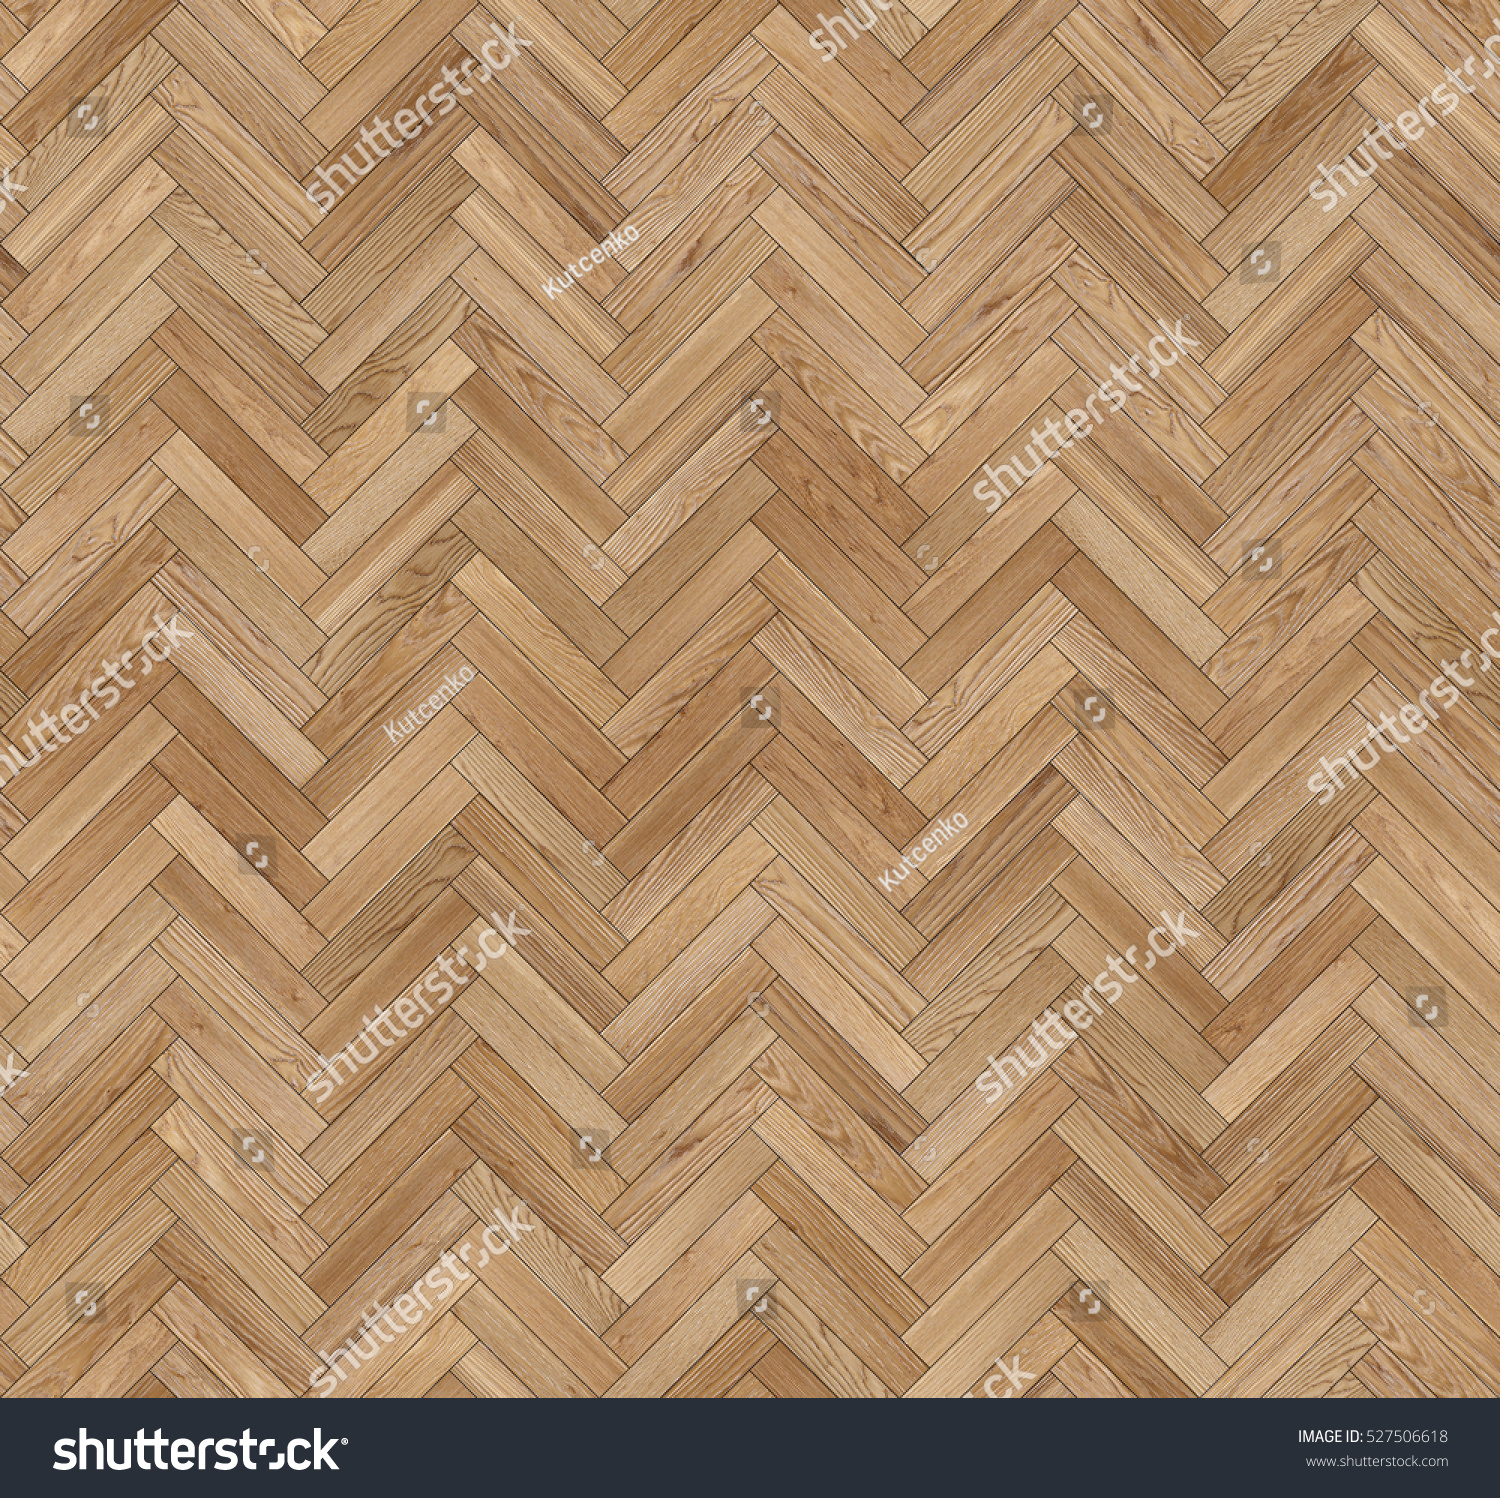 herringbone natural parquet seamless floor texture stock photo 527506618 shutterstock. Black Bedroom Furniture Sets. Home Design Ideas